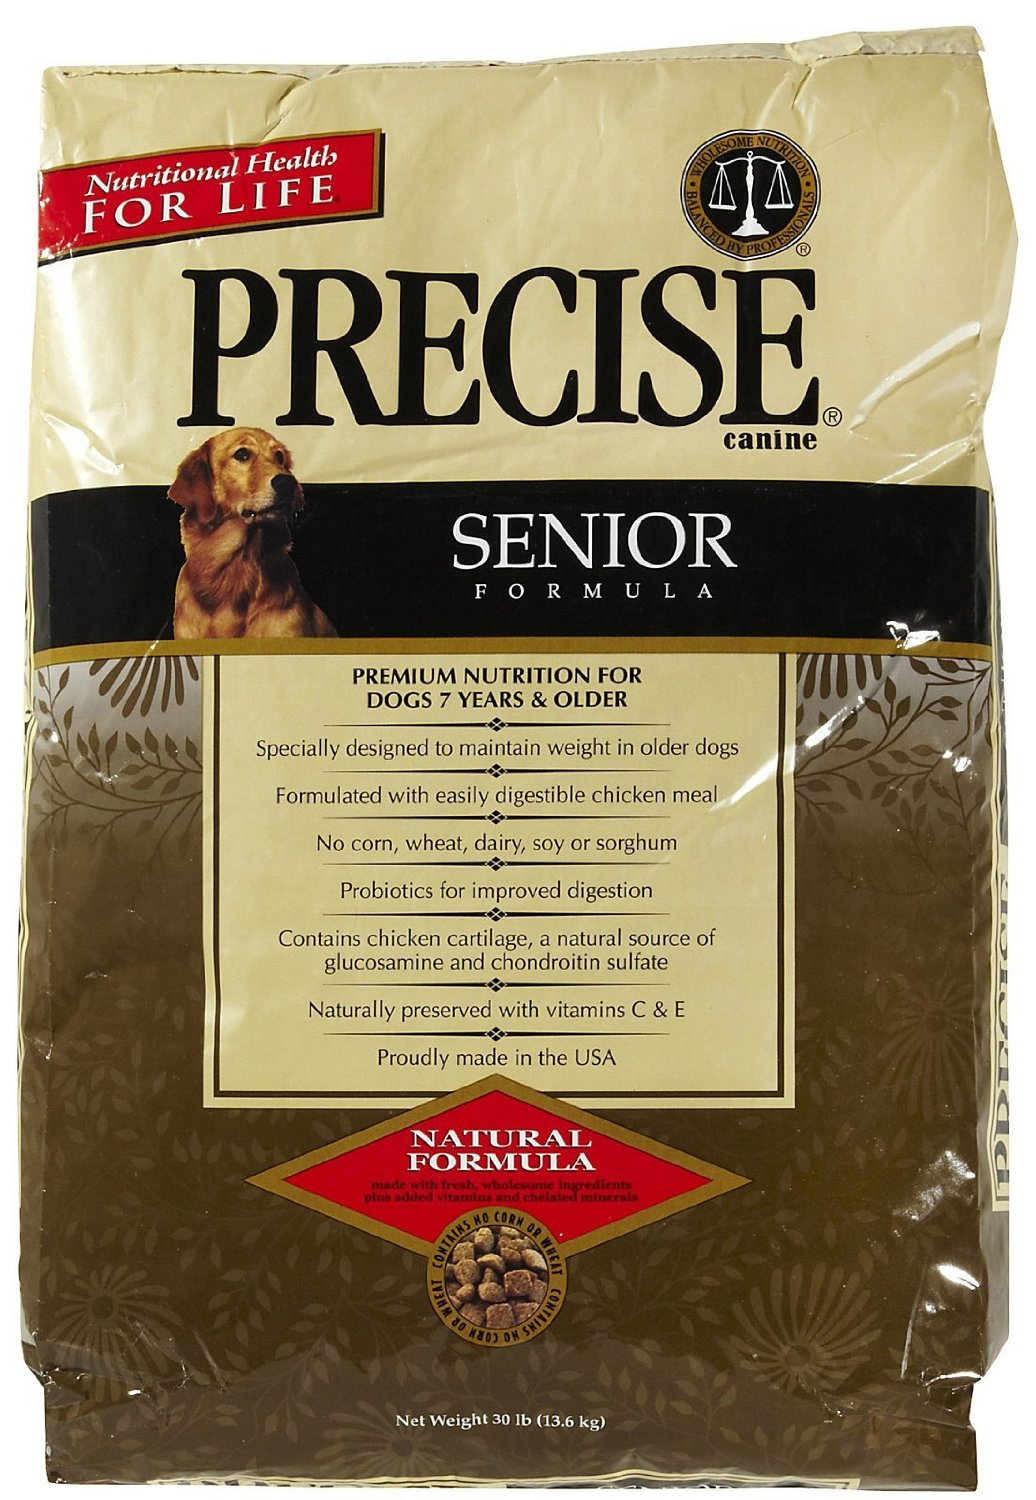 Precise Senior Dog Food